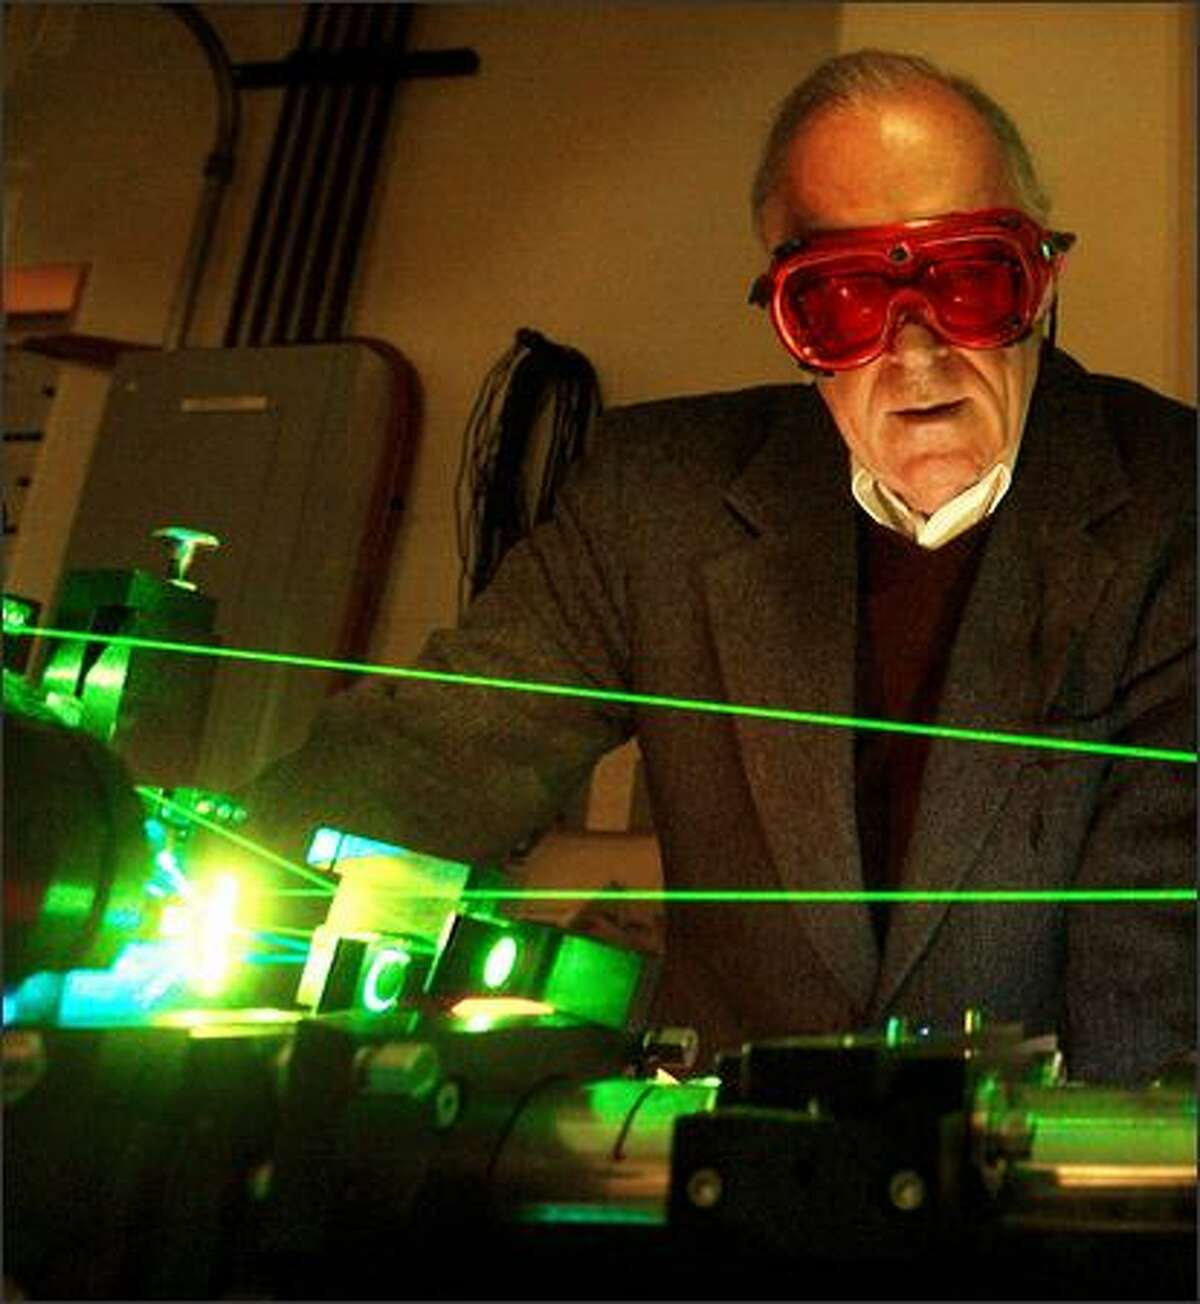 University of Washington physicist John Cramer is preparing to perform an experiment to see if time can go backwards.